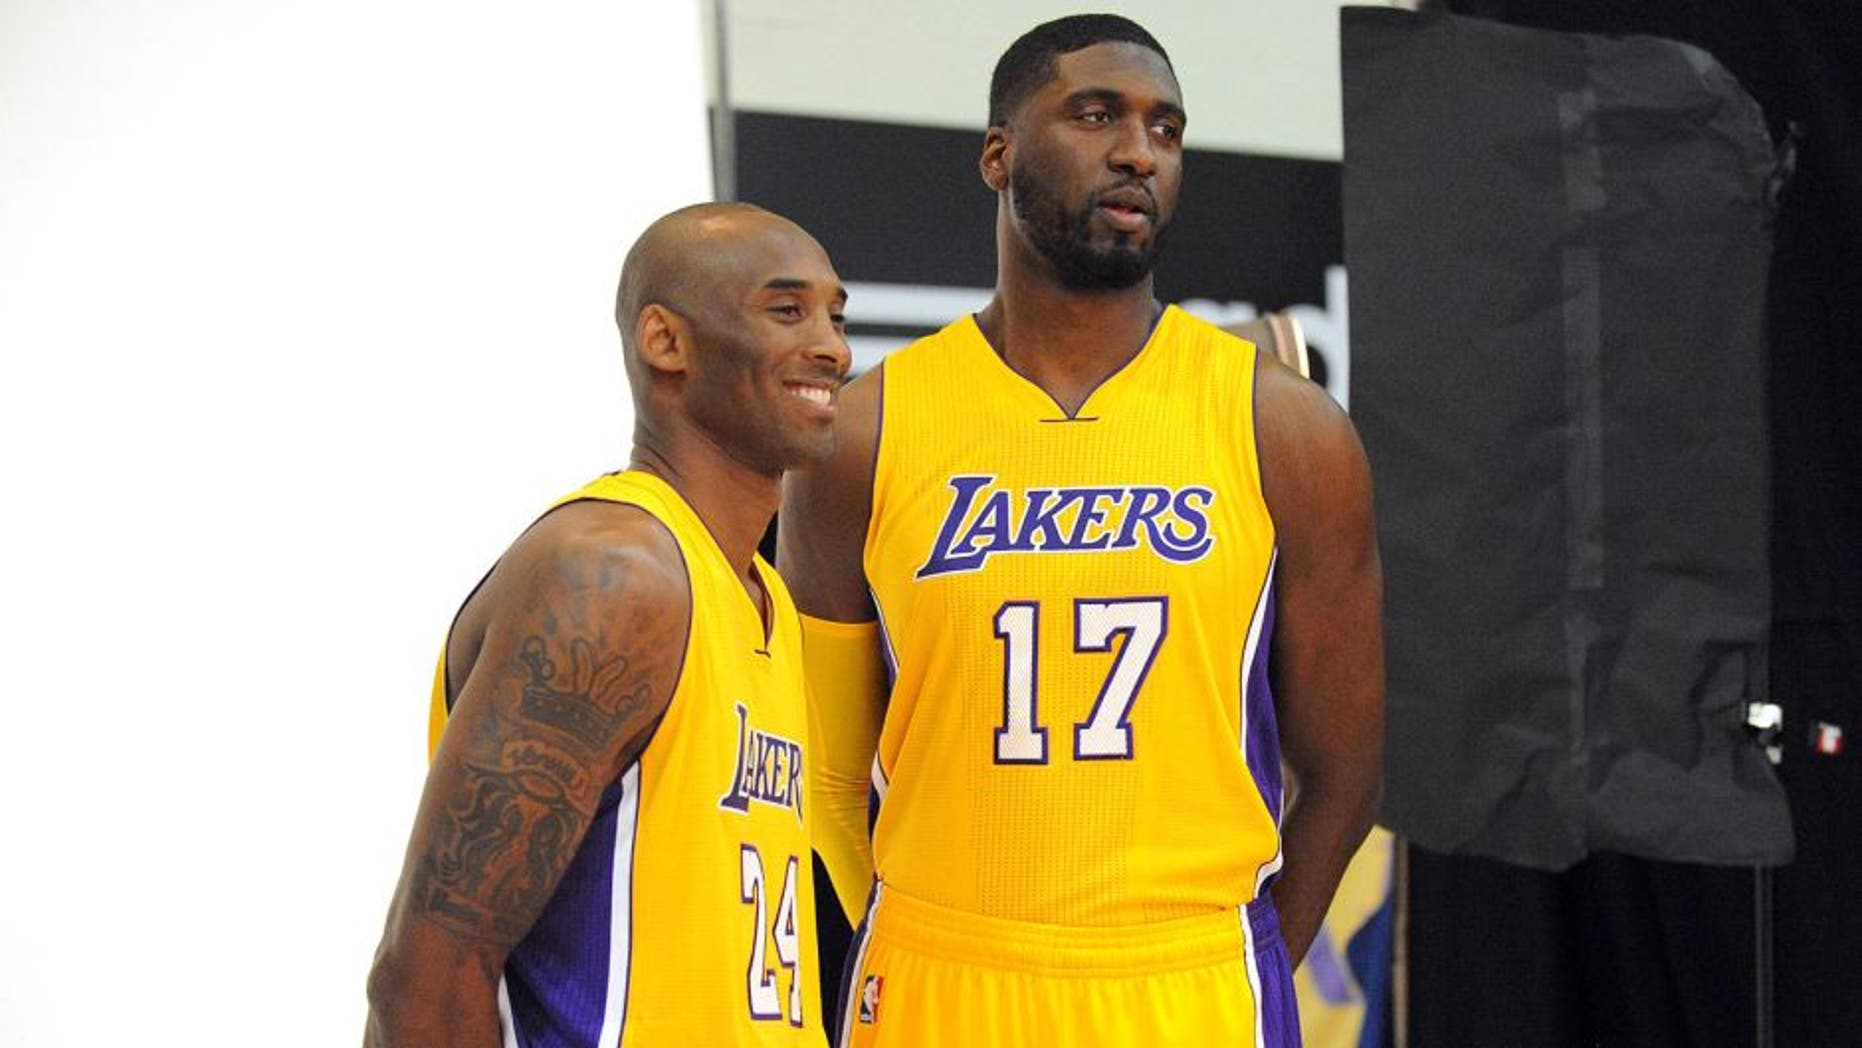 September 28, 2015; El Segundo, CA, USA; Los Angeles Lakers guard Kobe Bryant (left) and center Roy Hibbert pose for photographs during media day at Toyota Sports Center. Mandatory Credit: Gary A. Vasquez-USA TODAY Sports